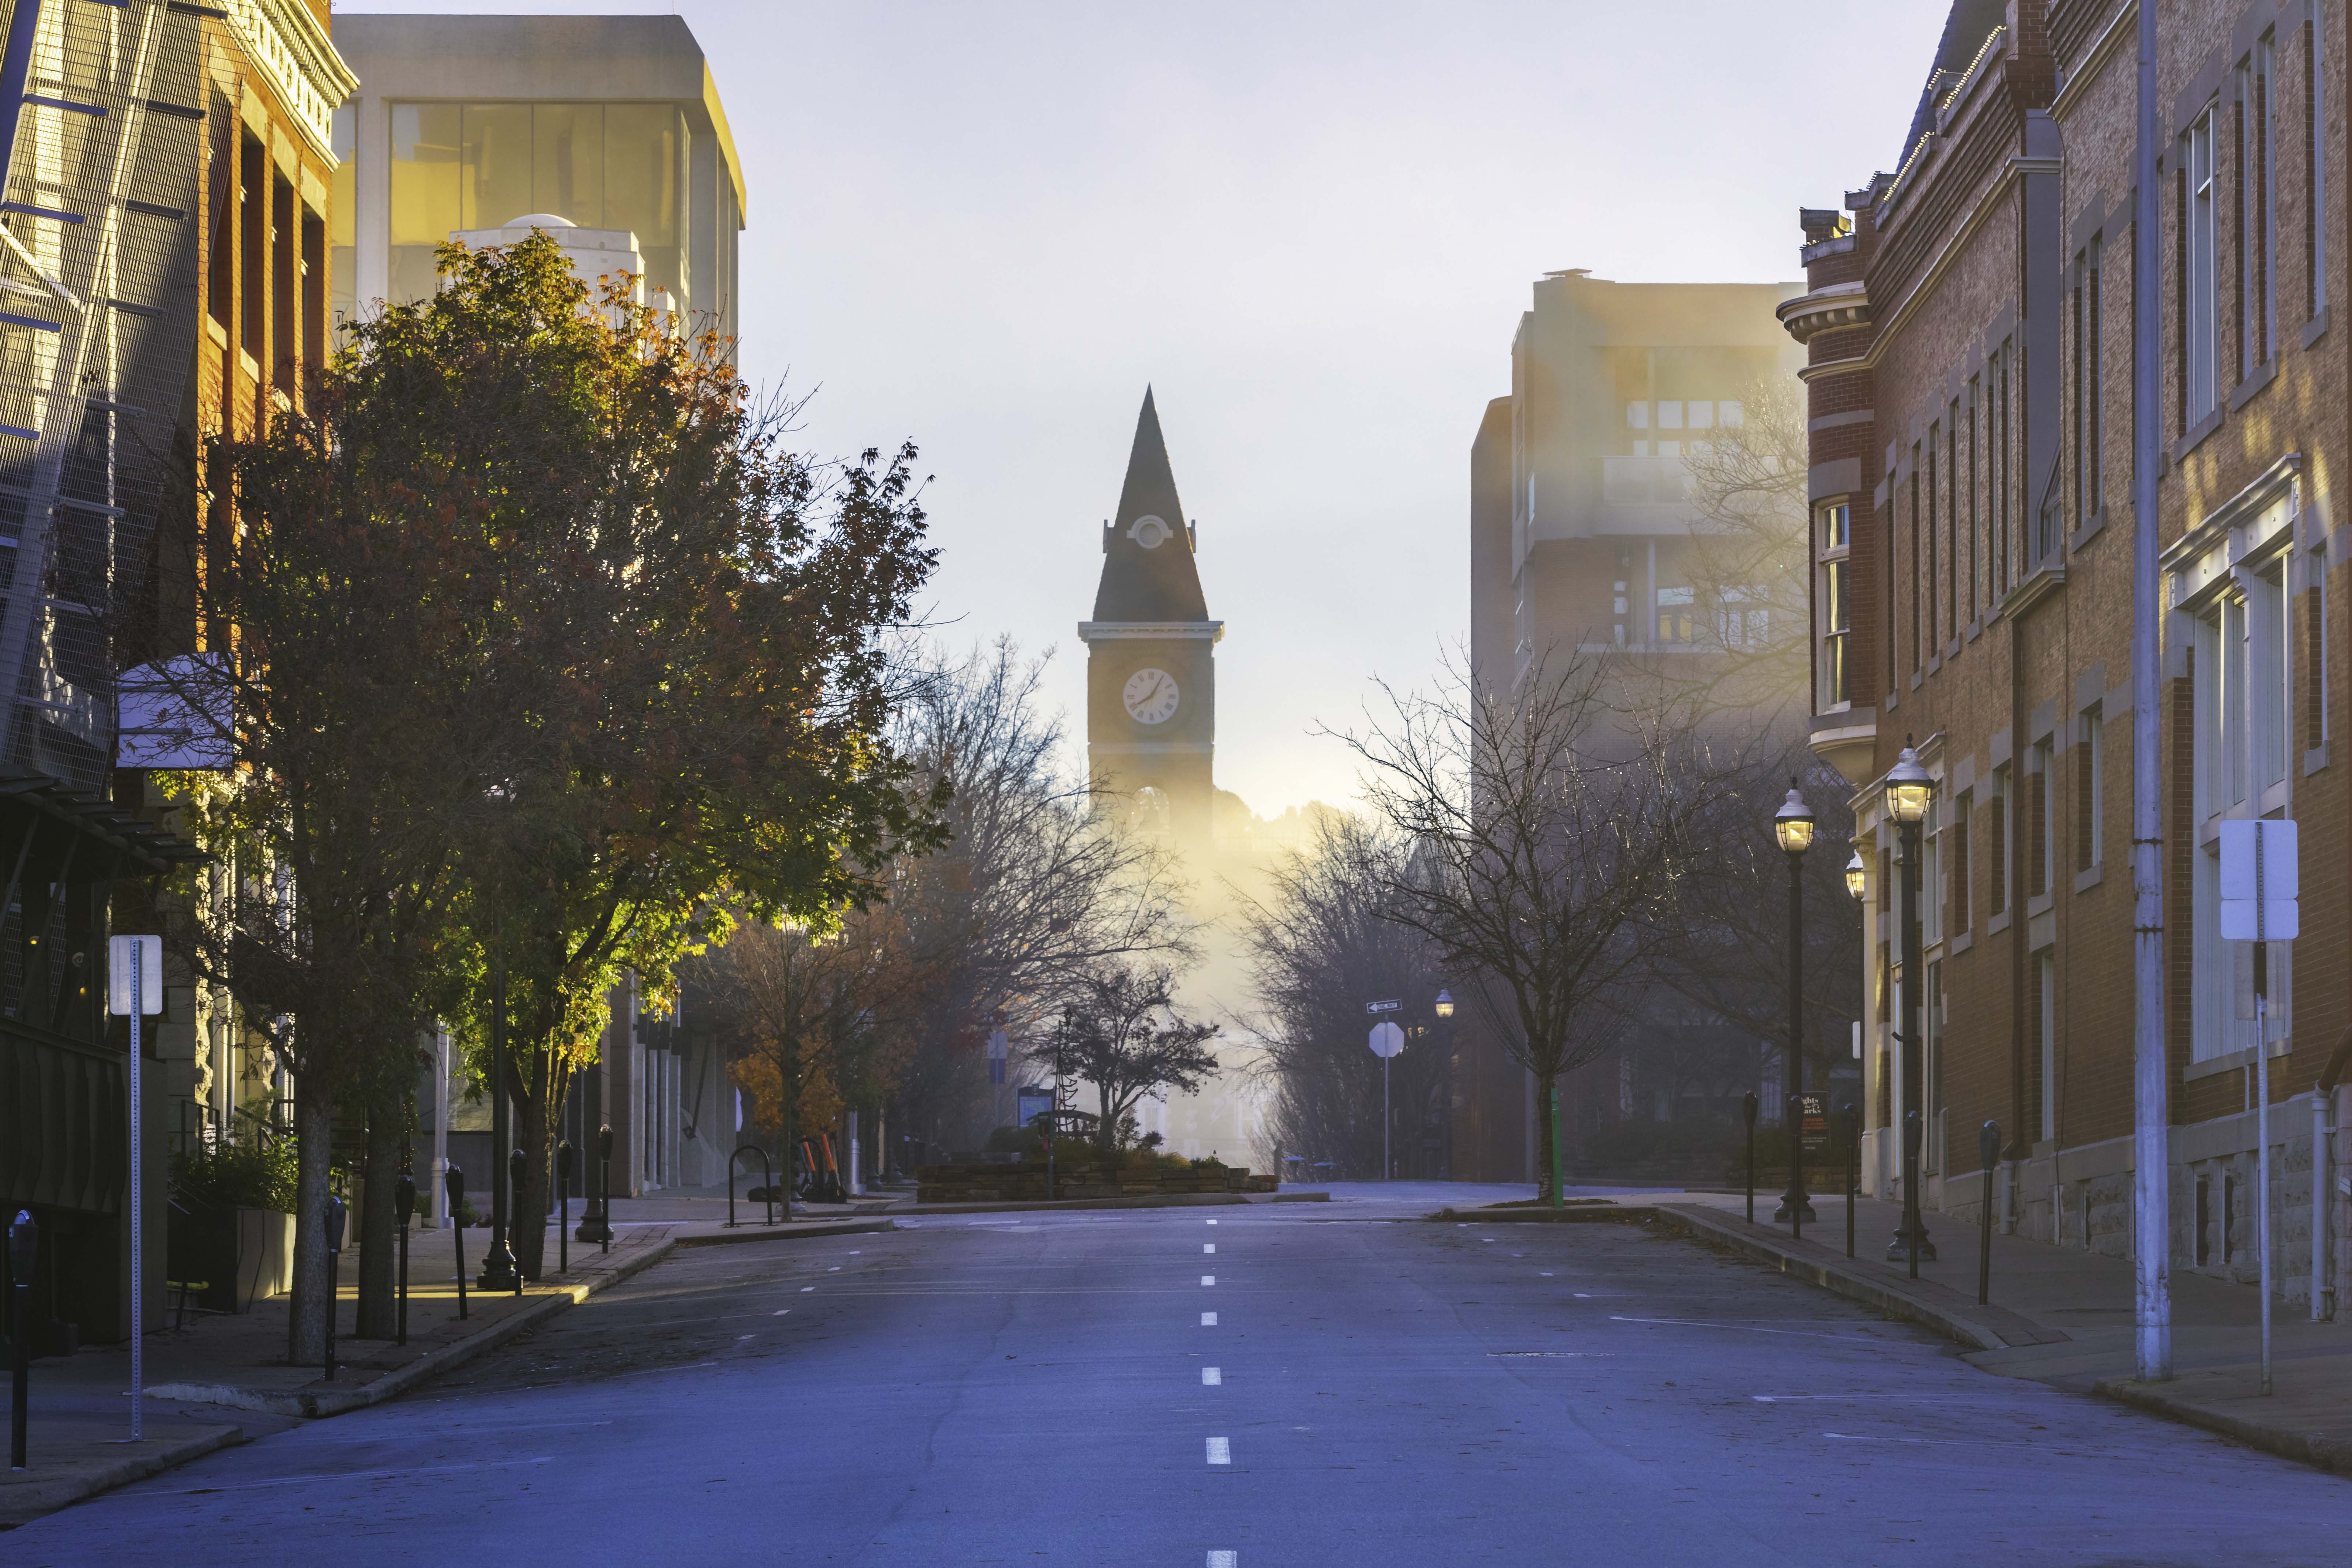 The view looking east along Center Street toward the historic county courthouse.